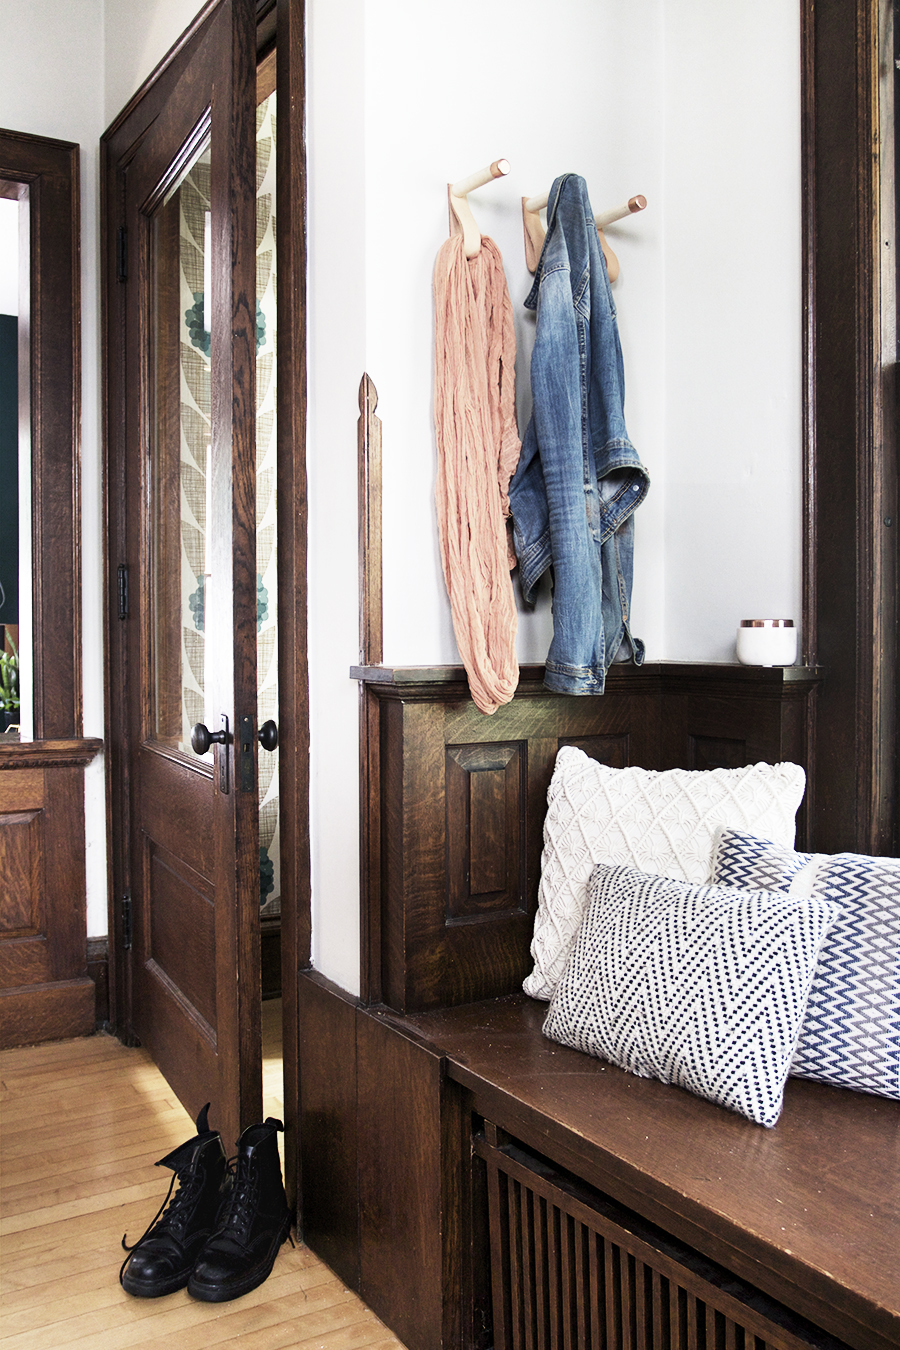 DIY Coat Hooks using Copper, Wood Dowel, and Leather Strapping